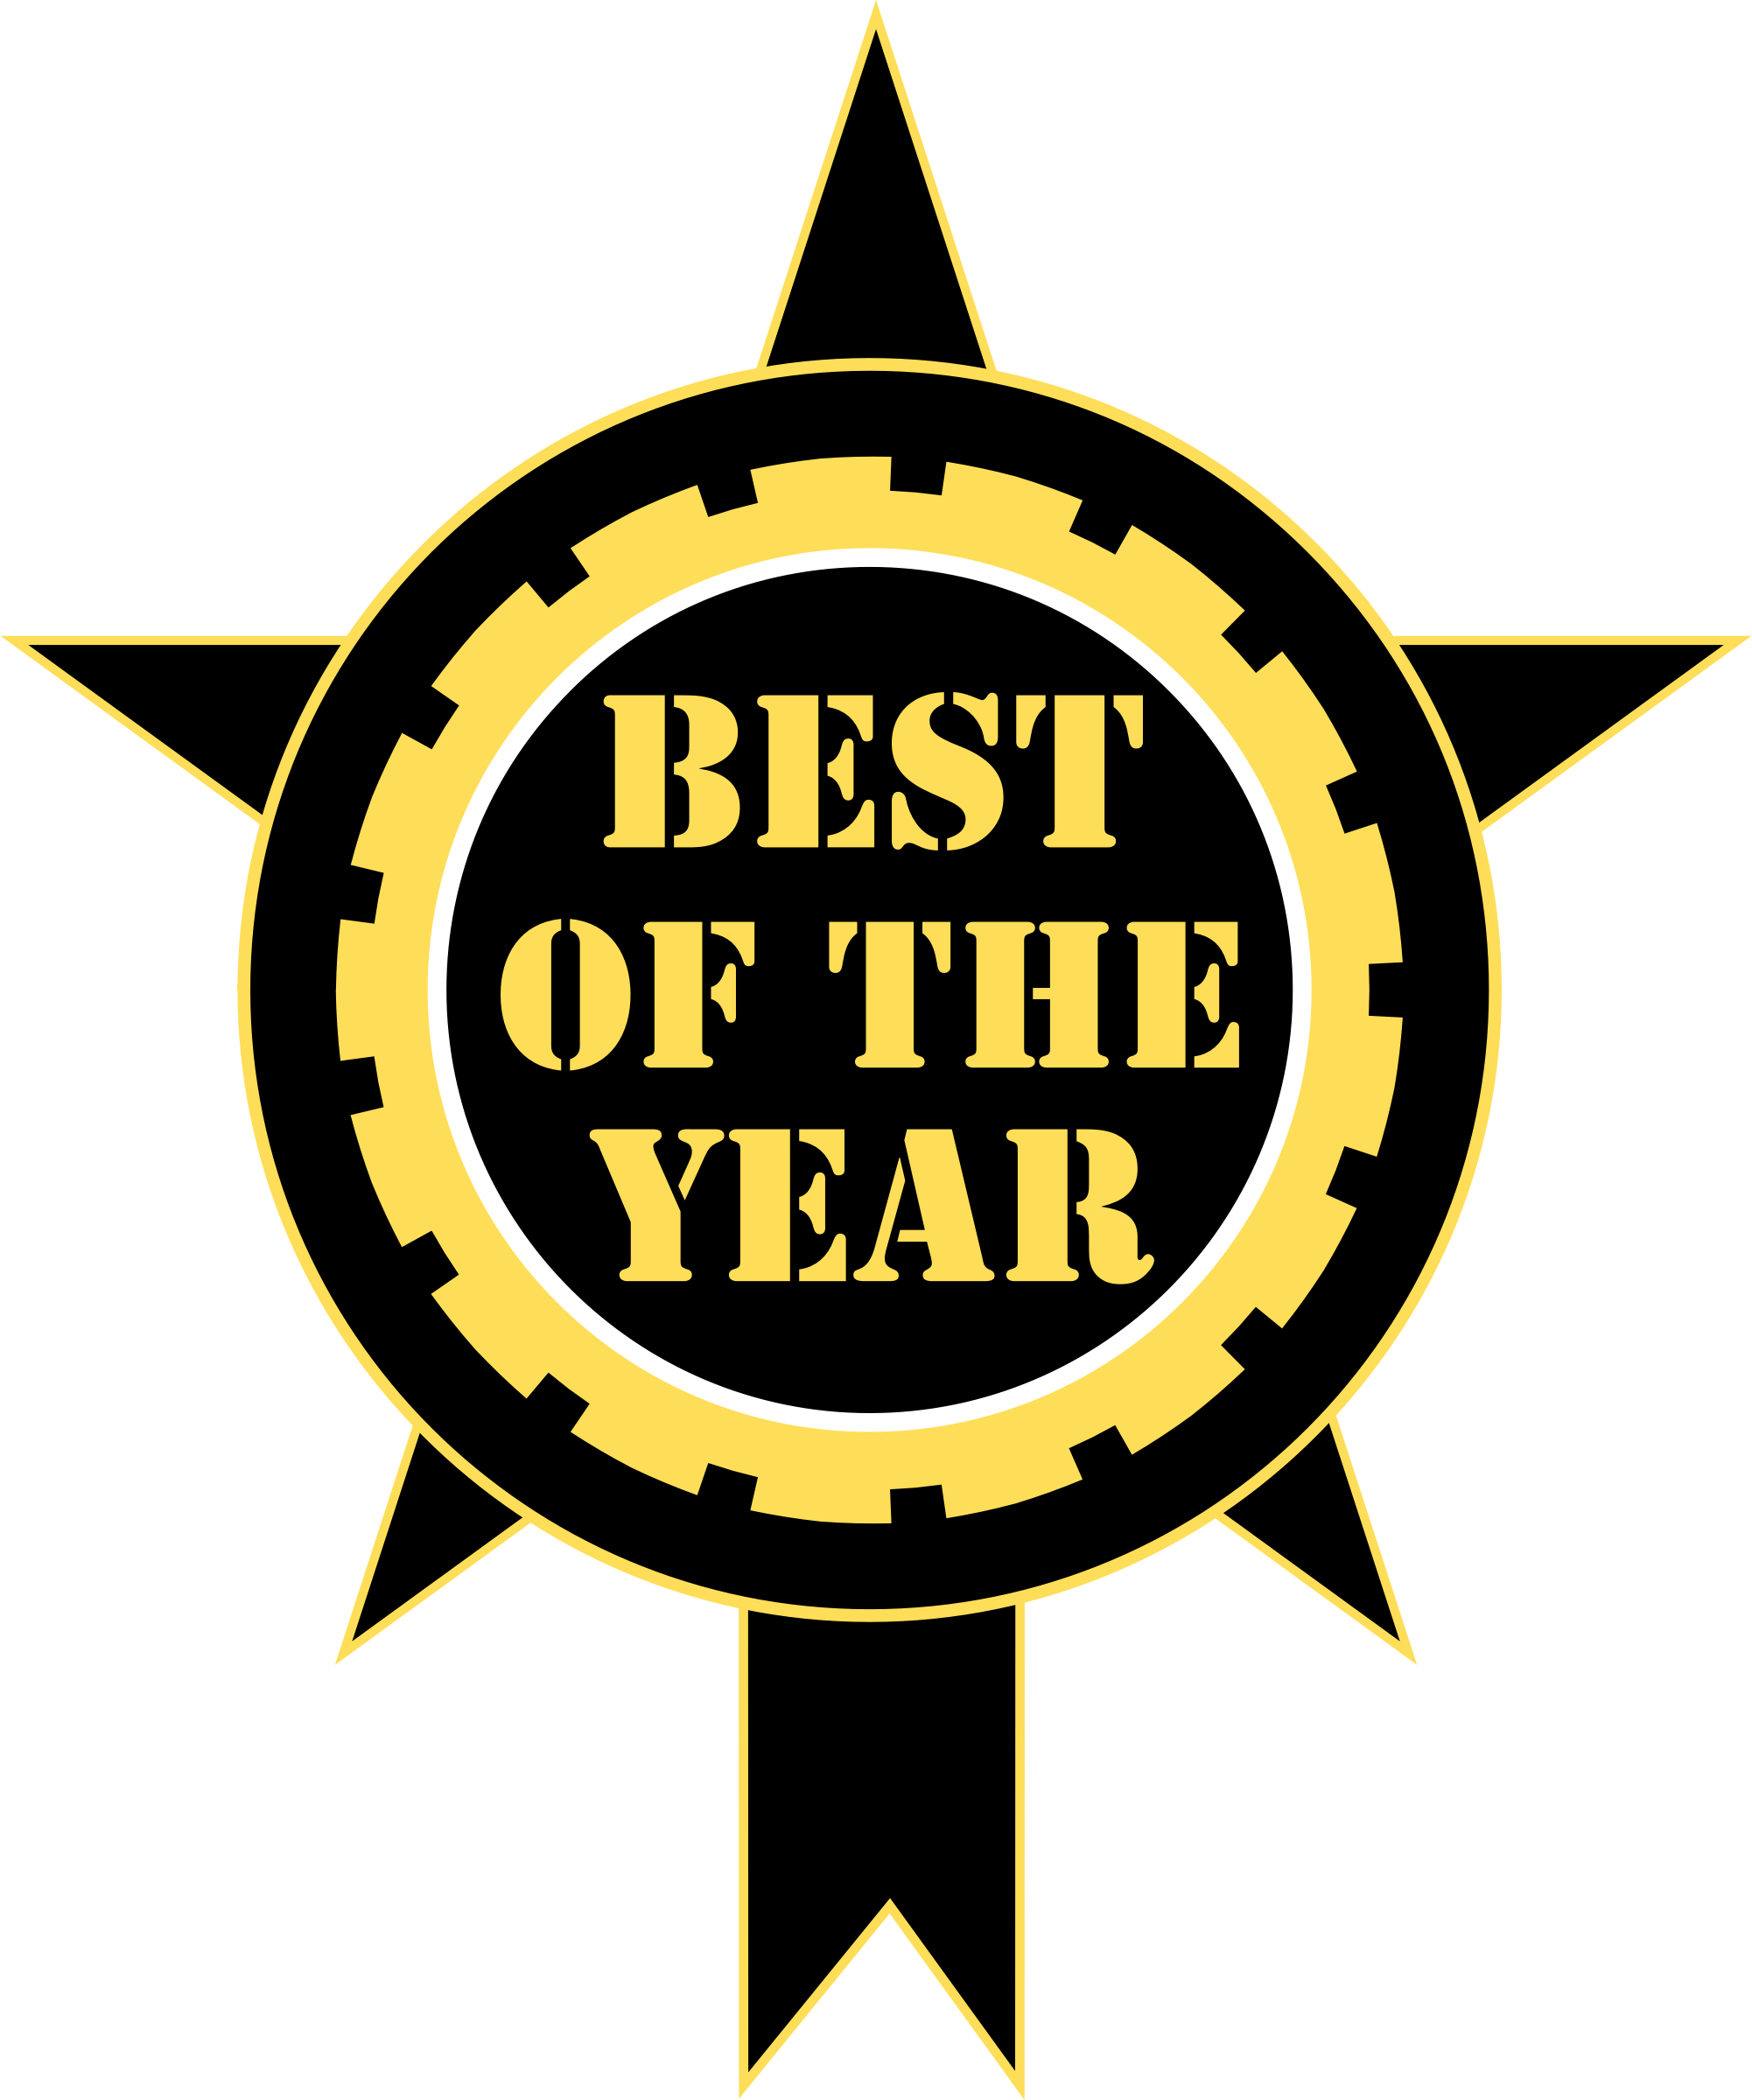 Best Of The Year Sticker by vectorportal